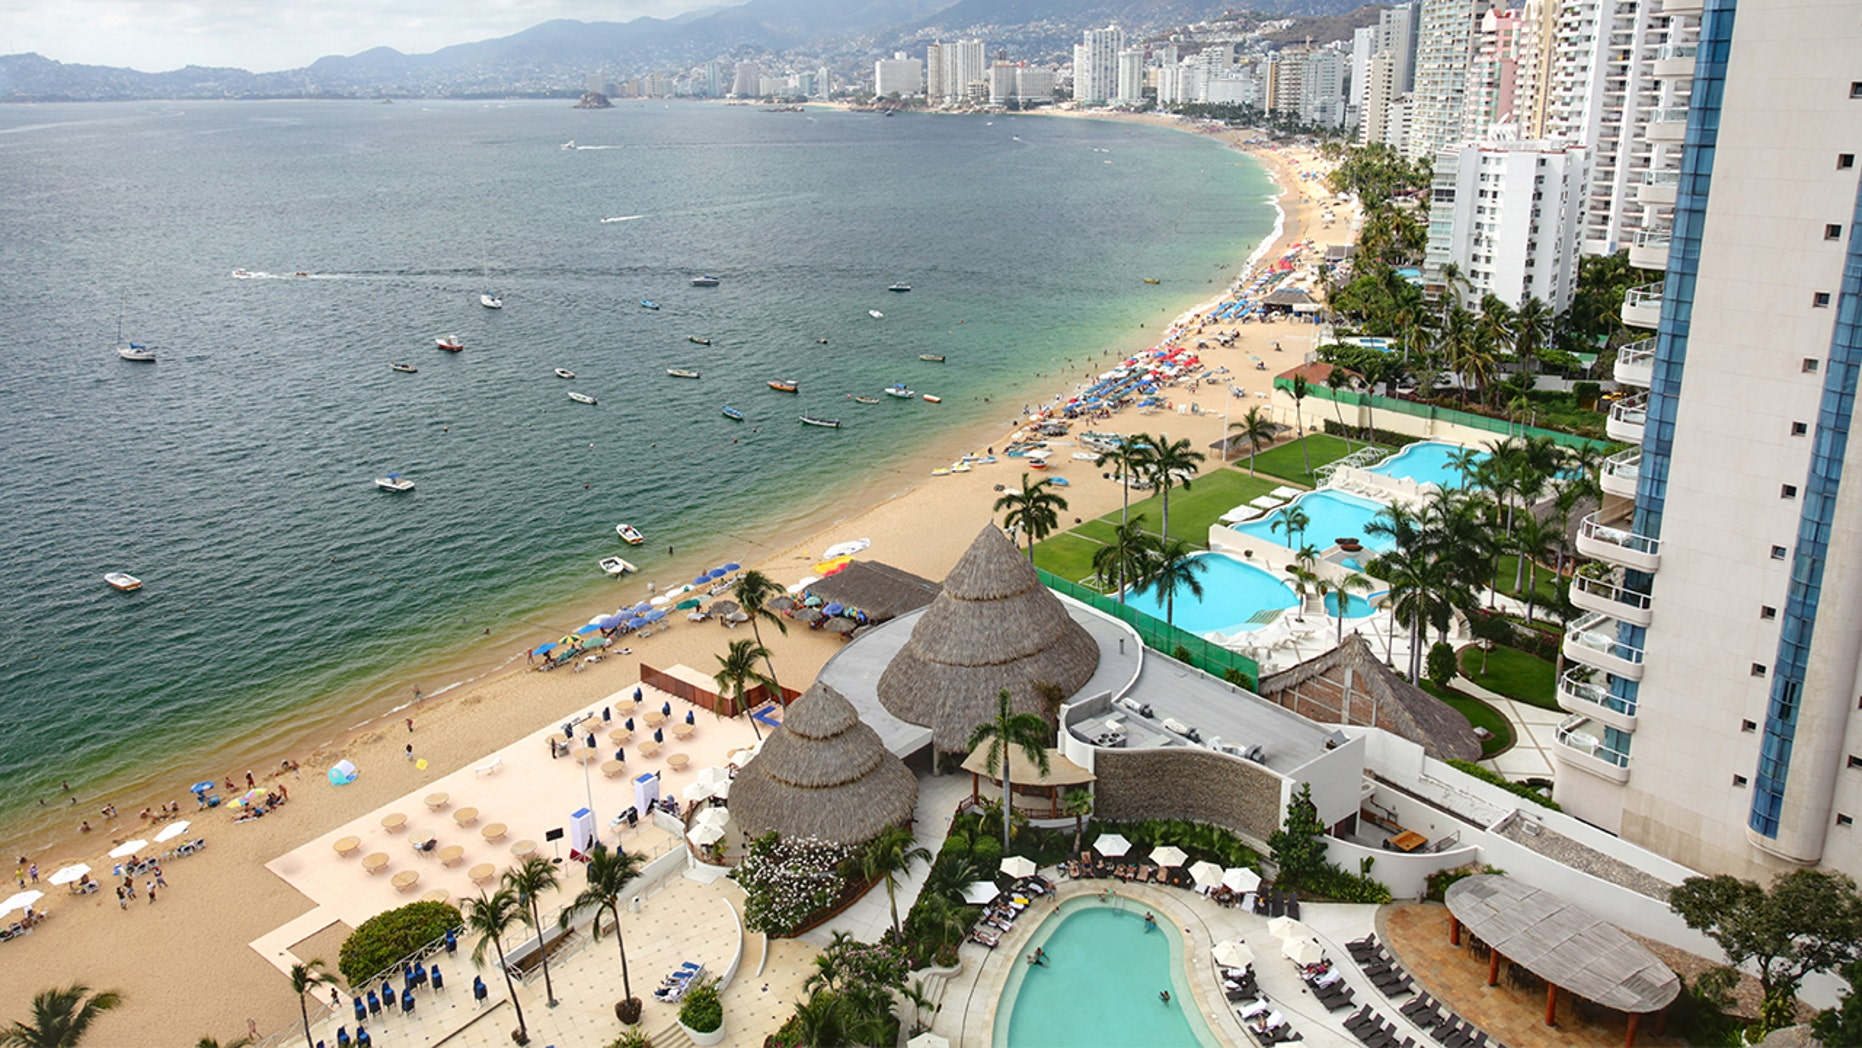 The resort town of Acapulco along the Southwest coast of Mexico has made a name for itself as one of the country's most dangerous places to visit.